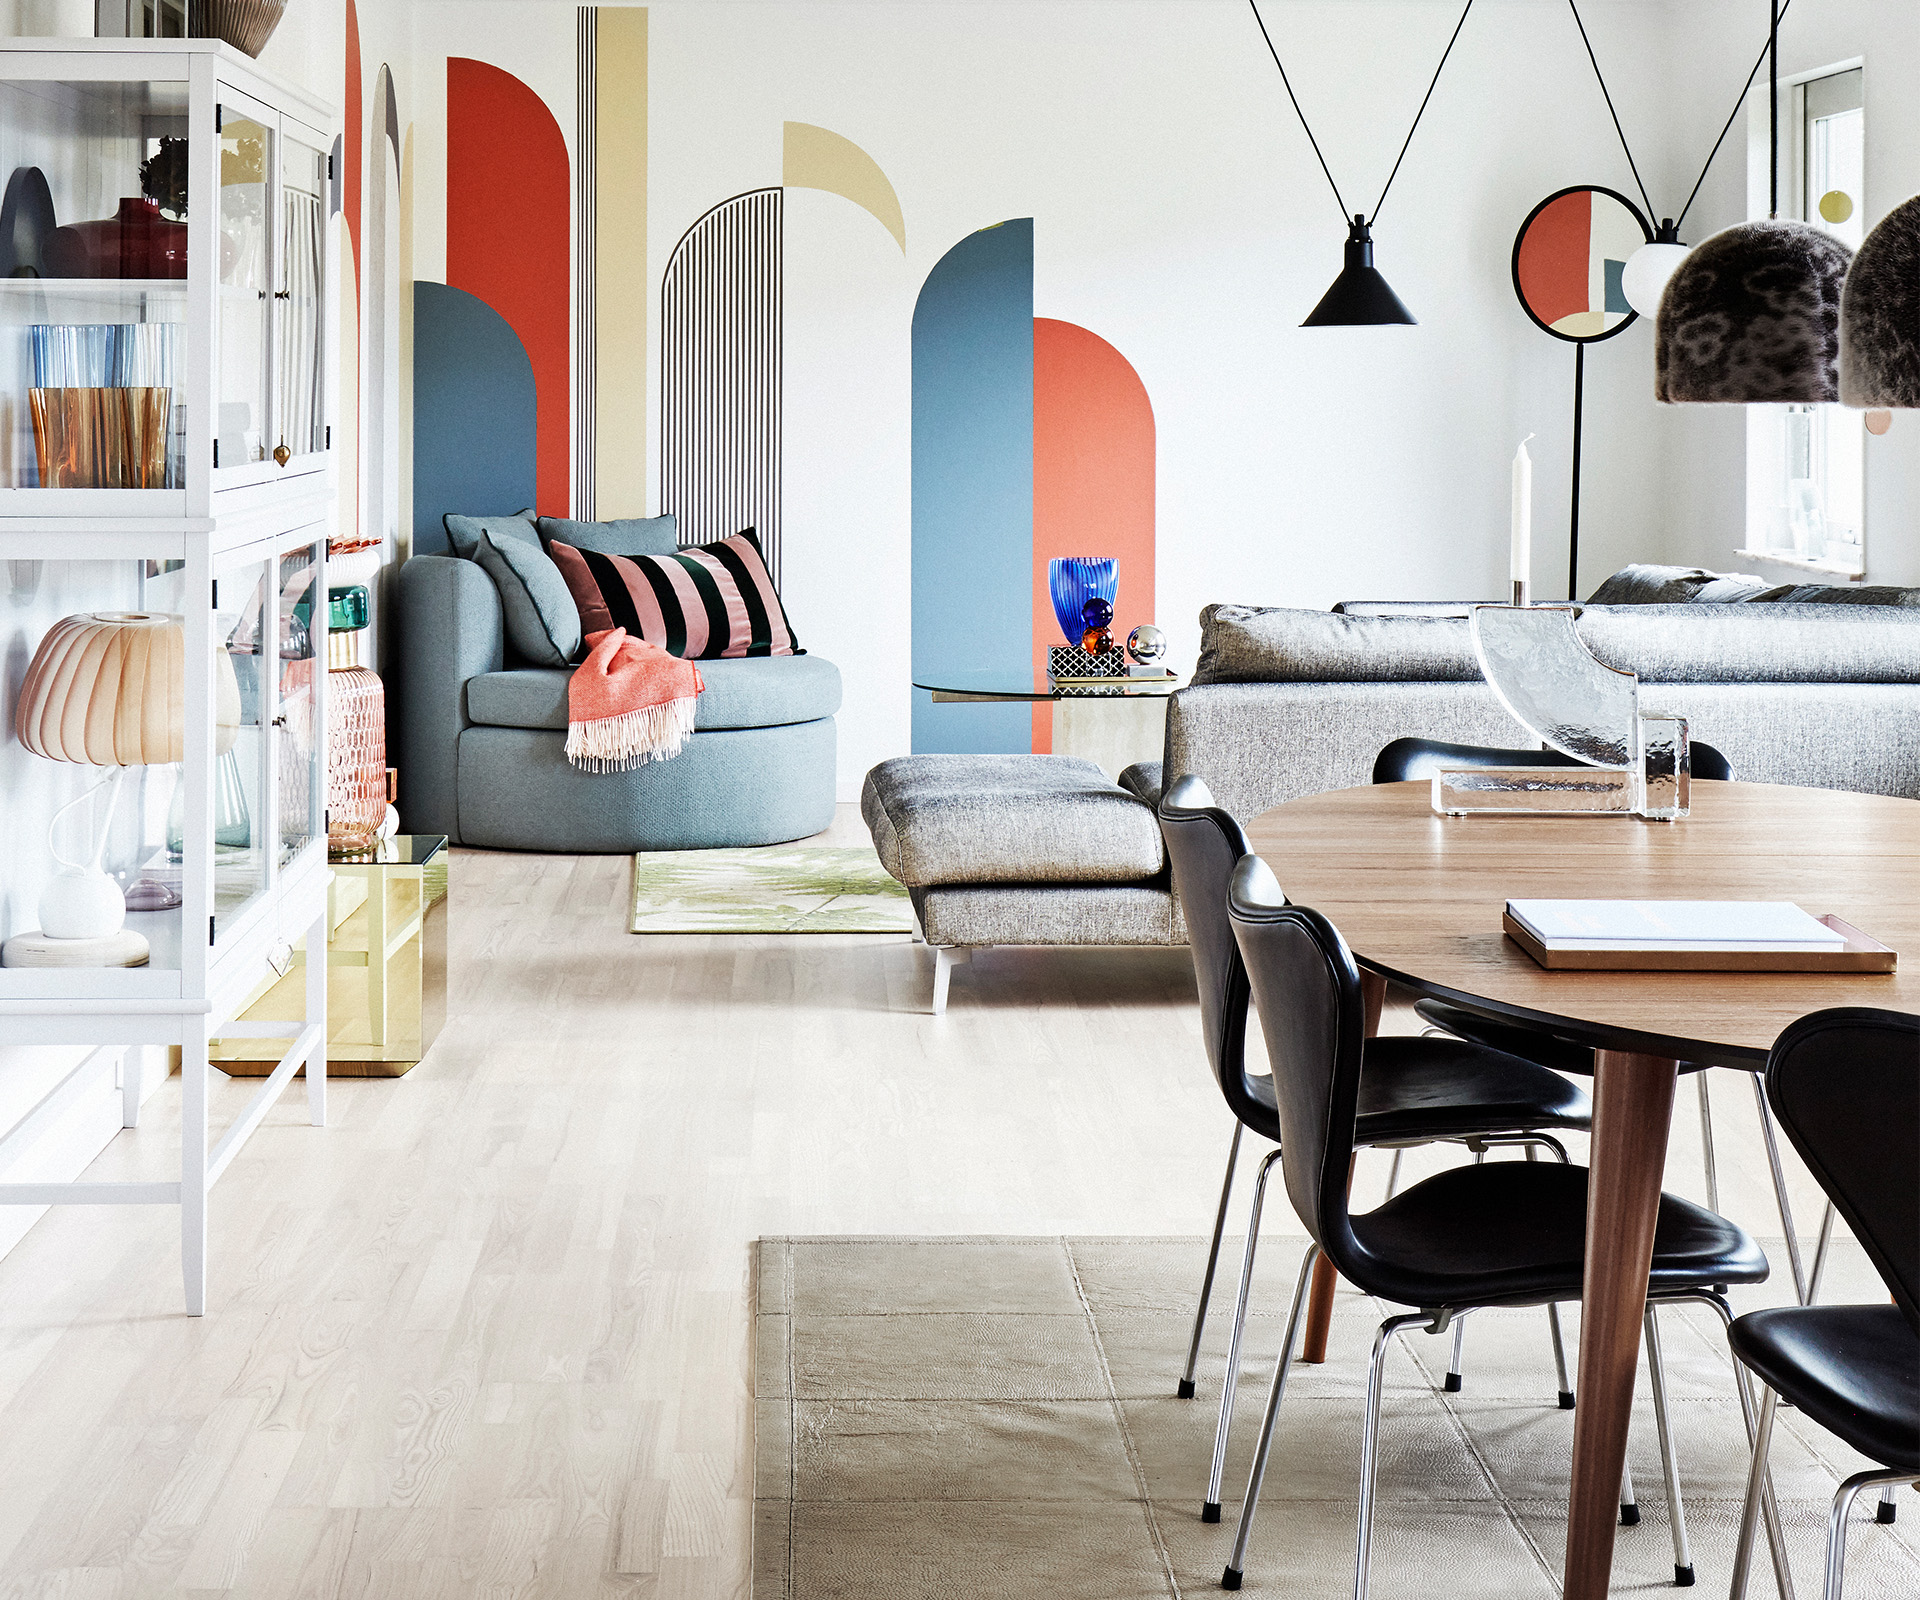 A delightful Danish house with vintage Scandi style